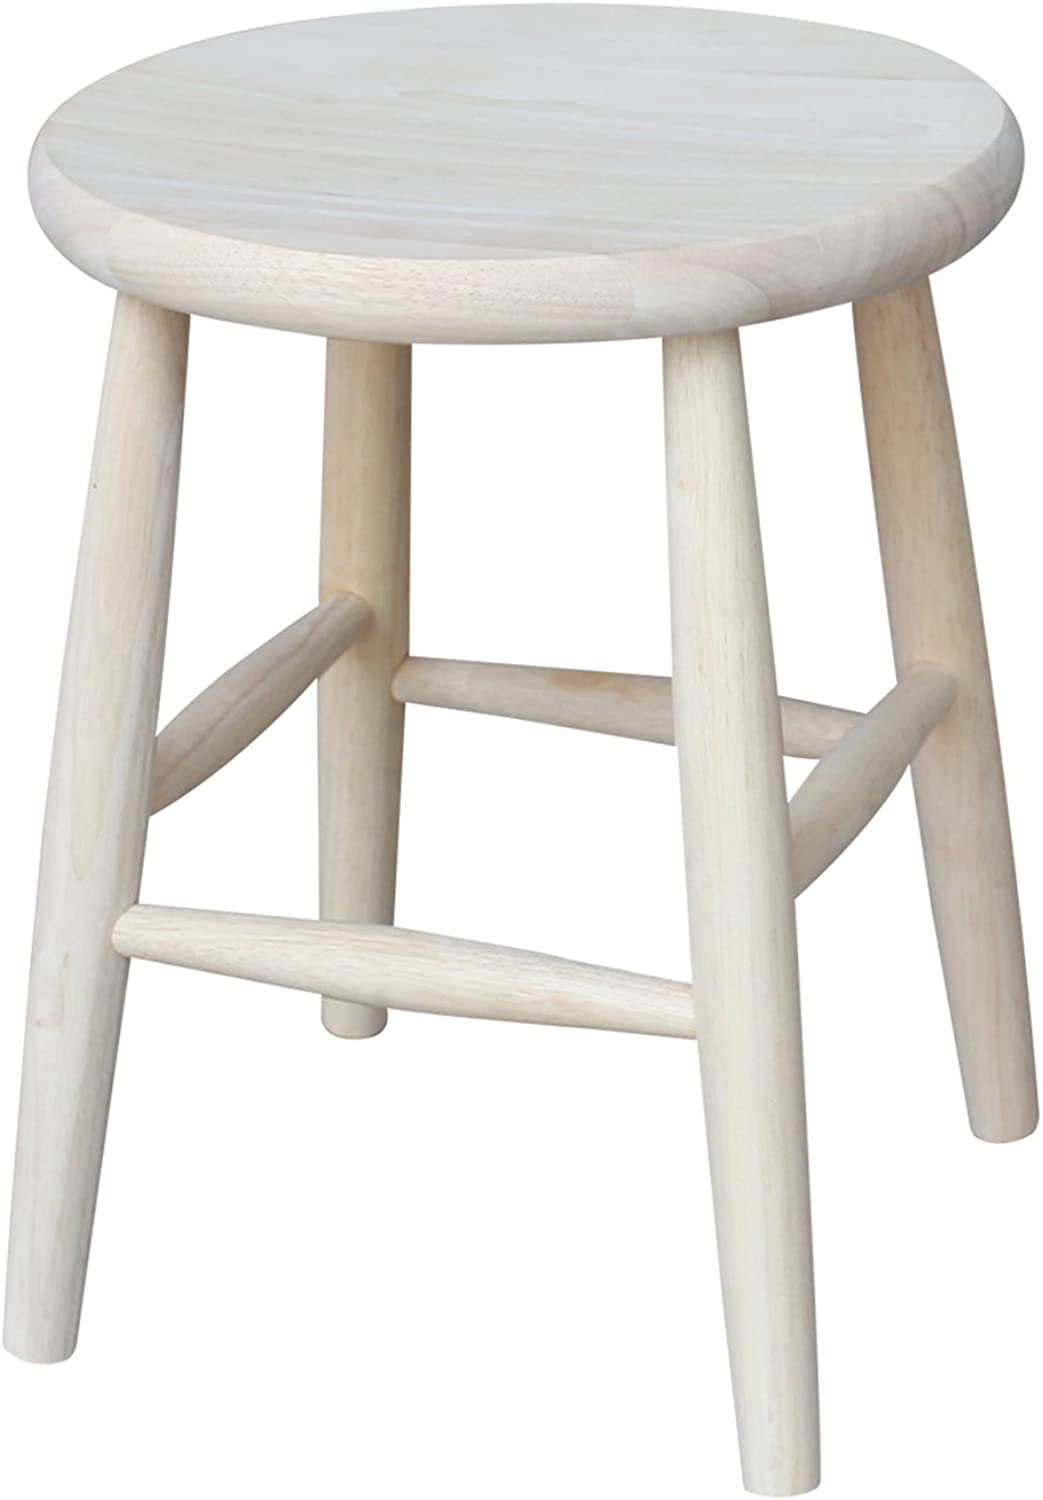 International Concepts 1S-818 Scooped Seat Stool - 18 Inch Seat Height